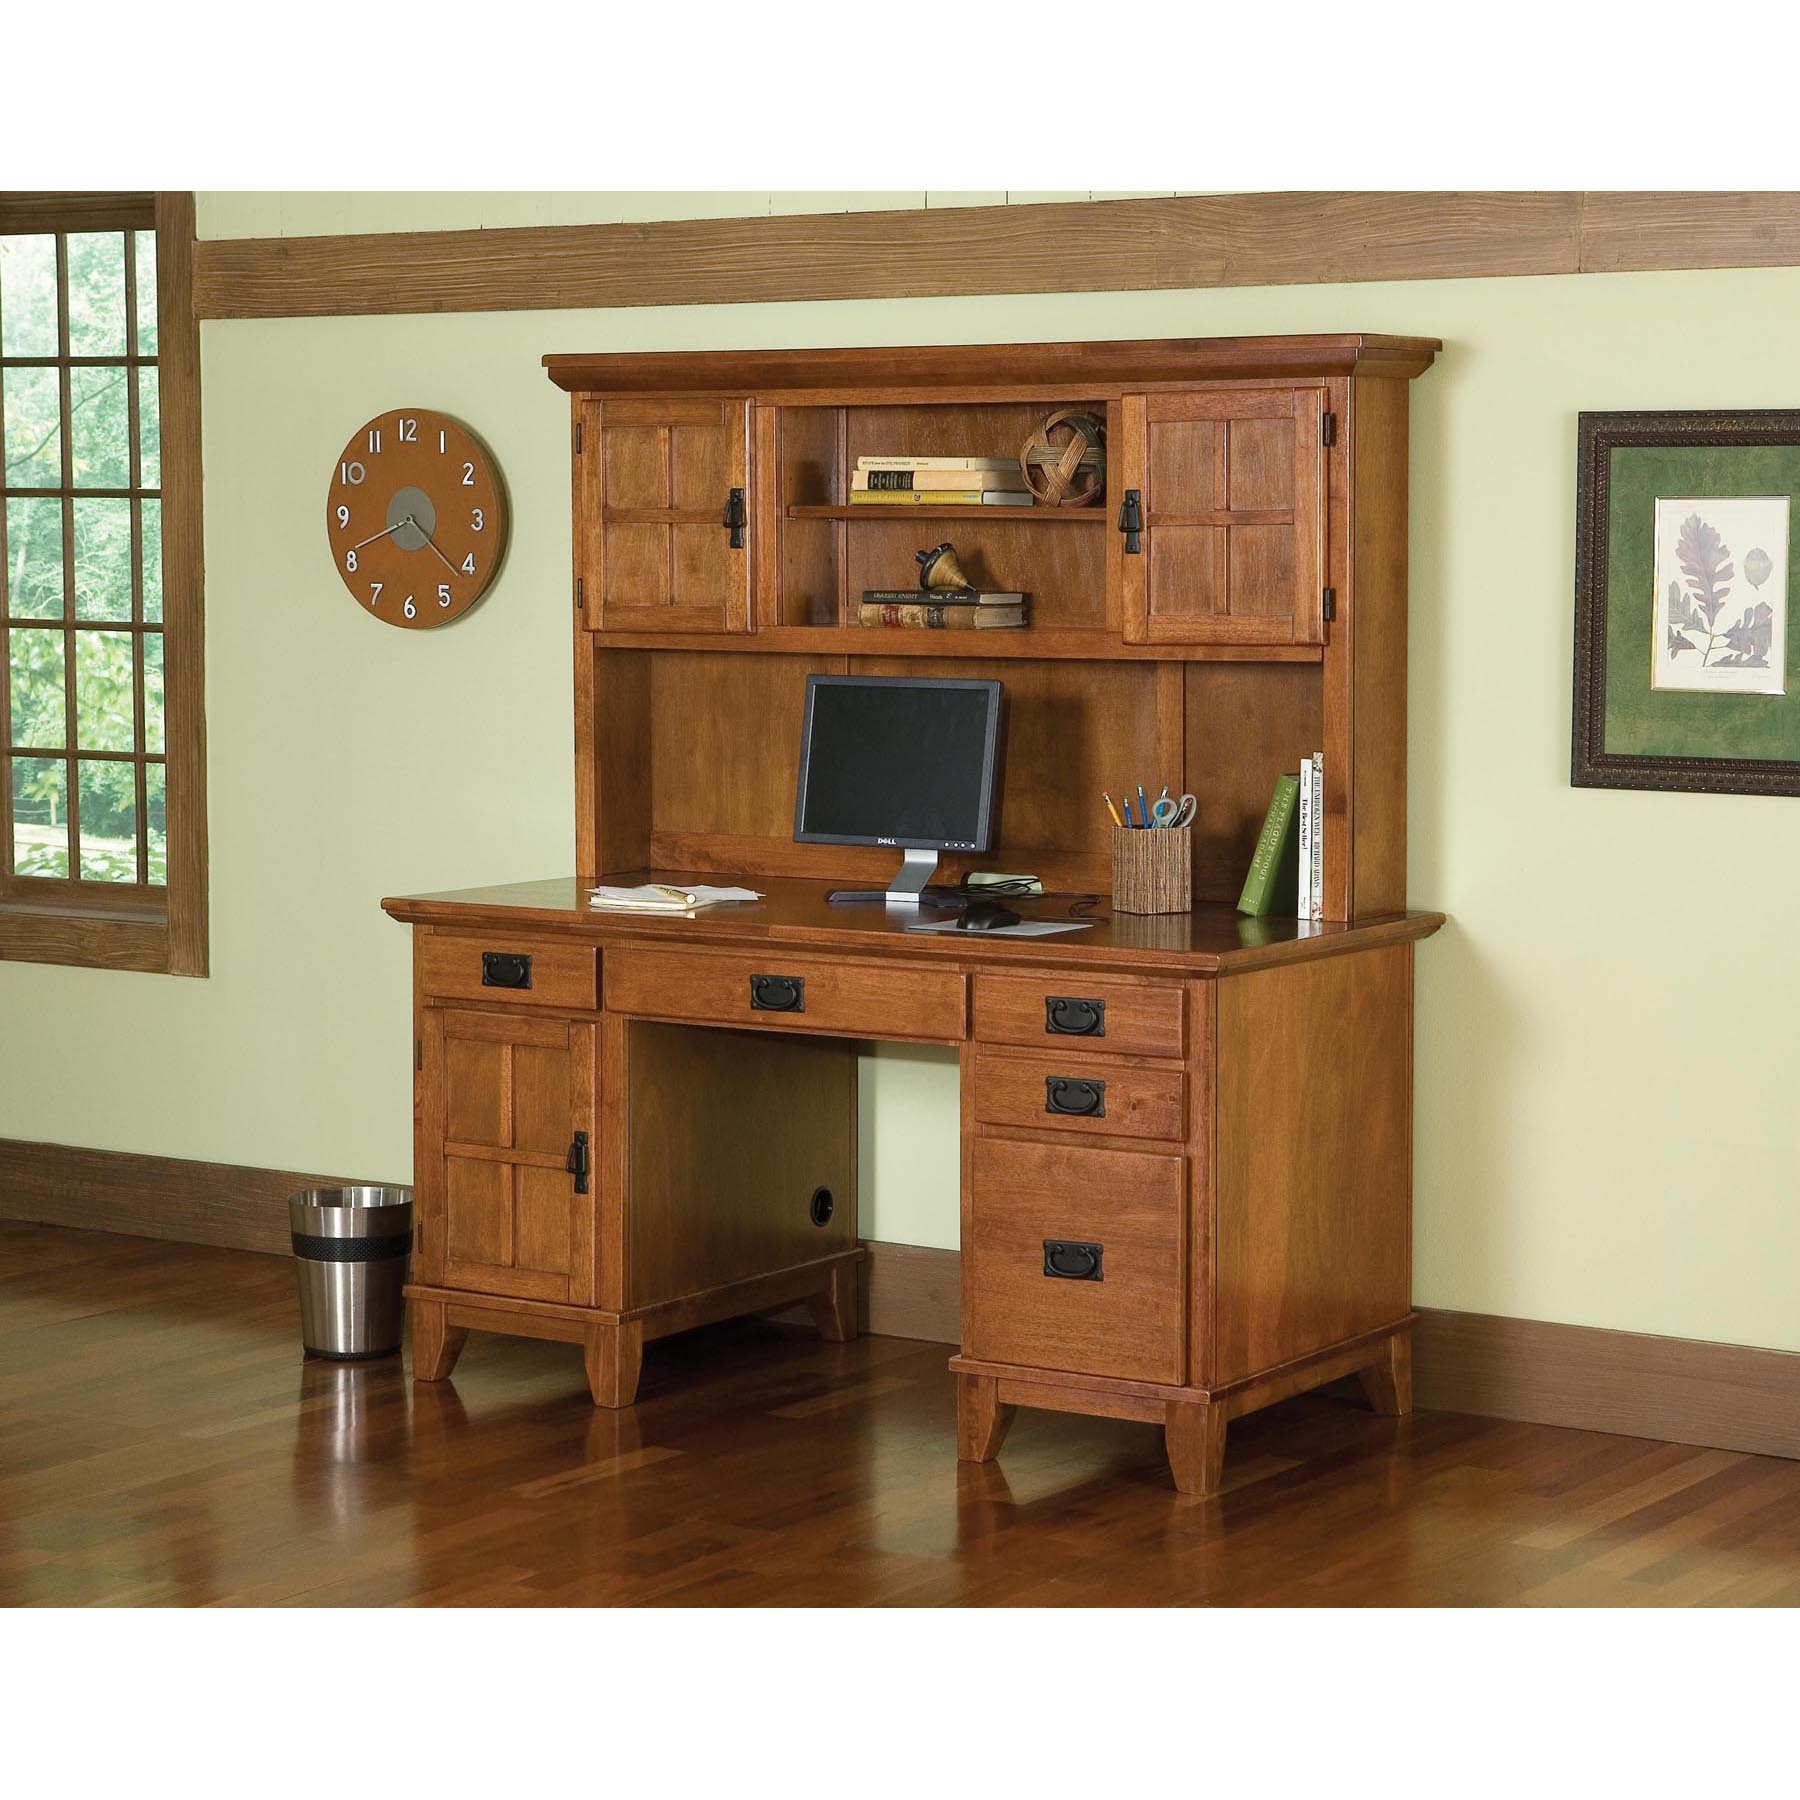 Shop Home Styles Arts And Crafts Cottage Oak Pedestal Desk And Hutch